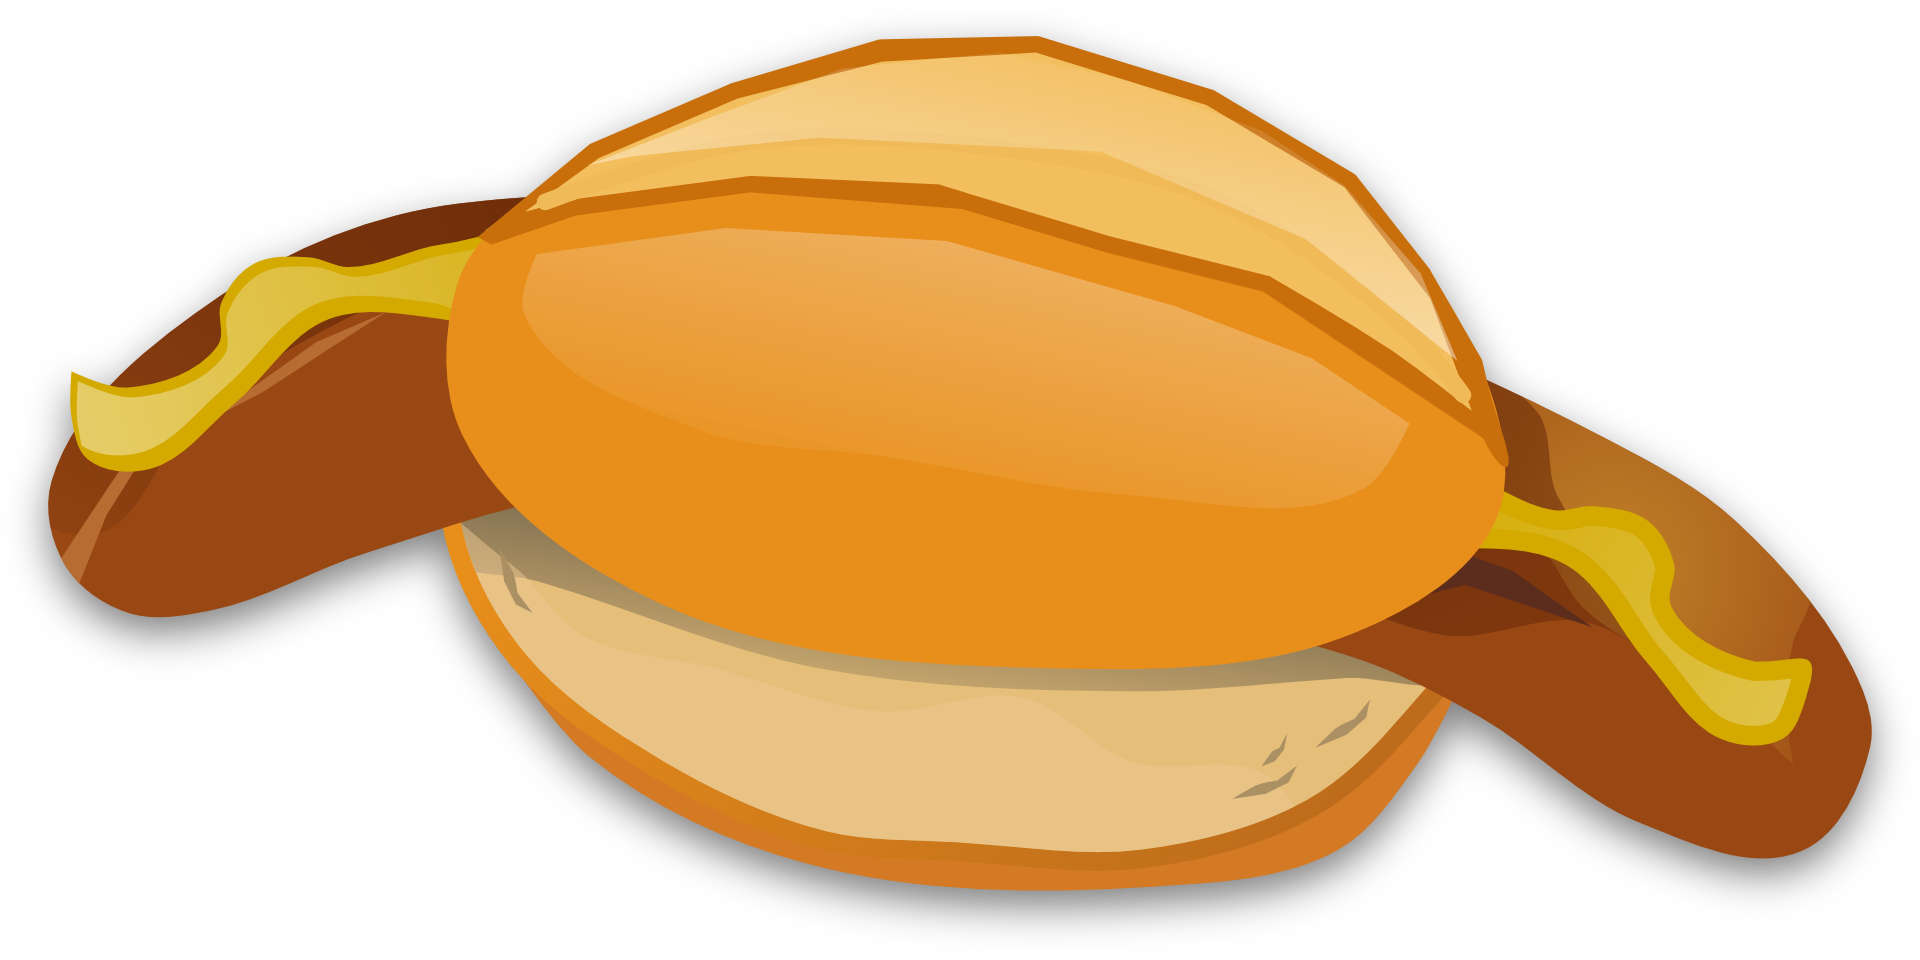 Clipart of the bratwurst free image.